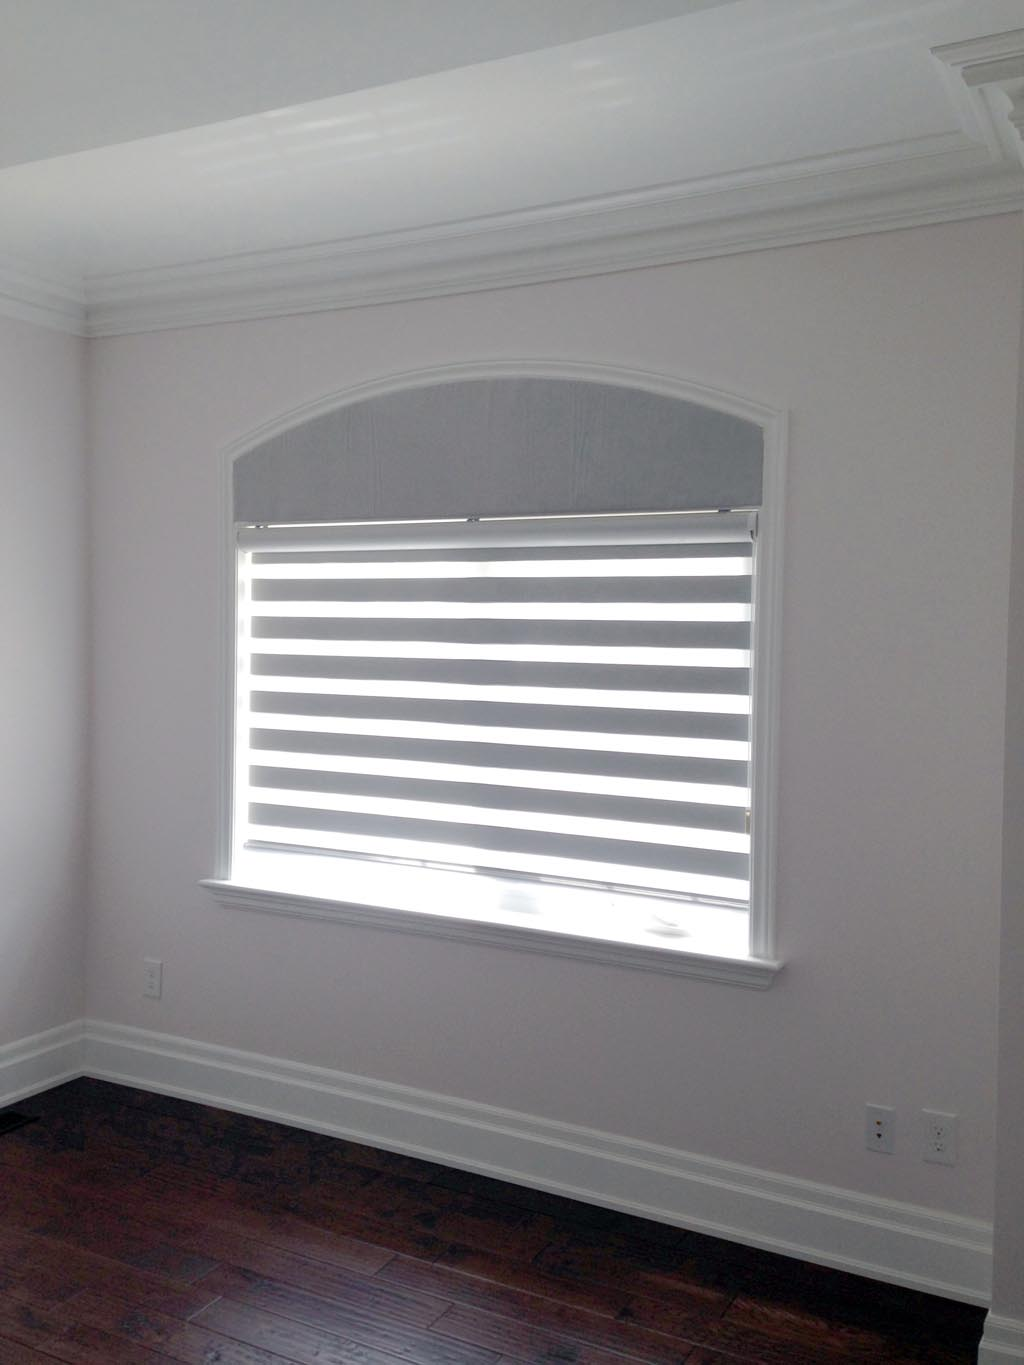 Eyebrow arch window blinds window treatments design ideas for Decor blinds and shades